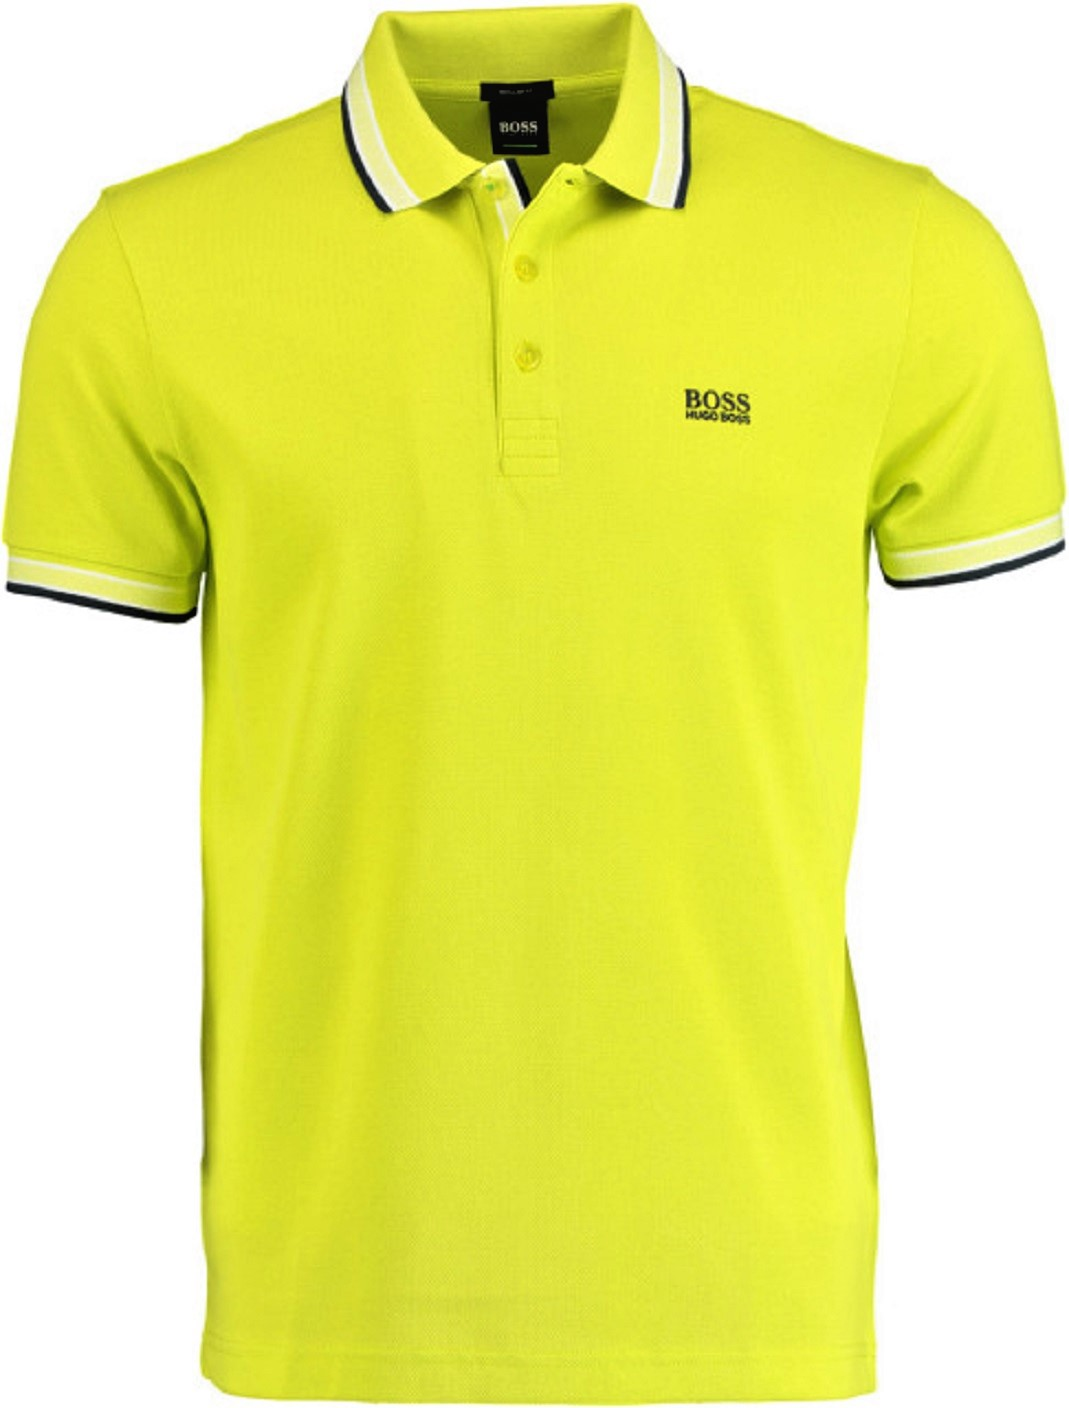 HUGO BOSS Polo regular fit 3 bottoni GIALLO LIMONE Modello Paddy 50398302 732